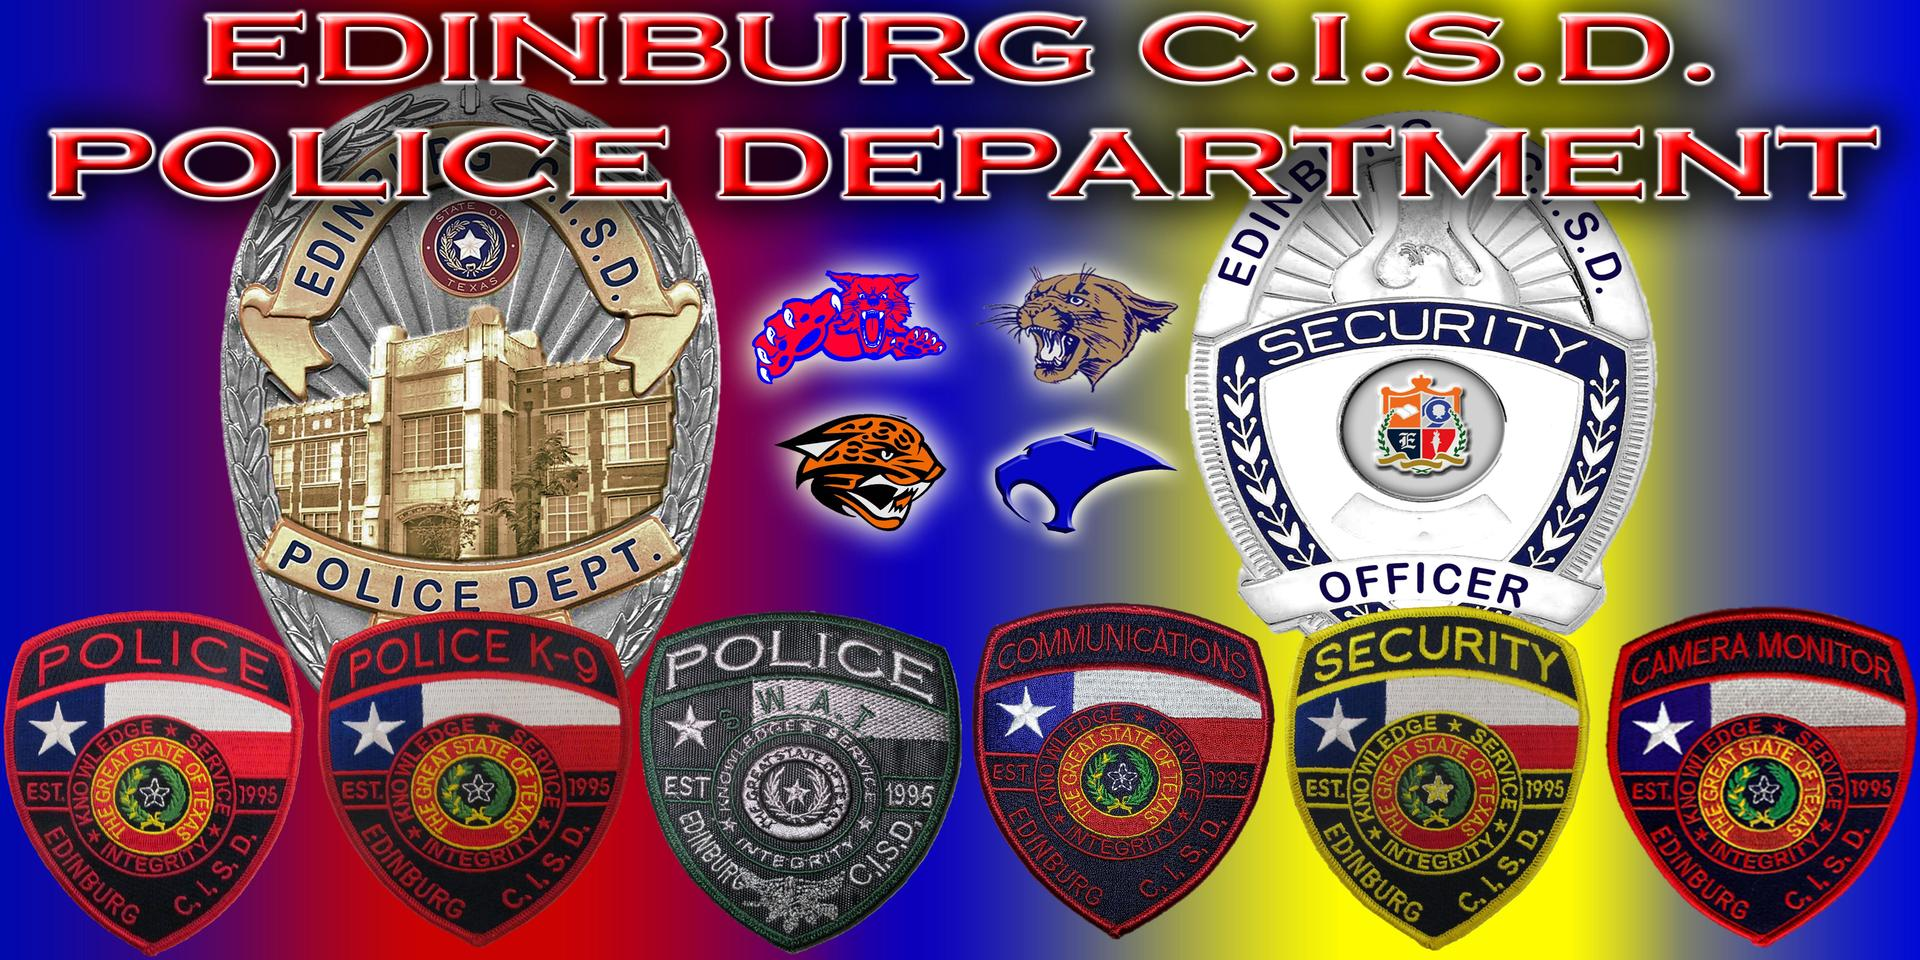 Welcome to the Police Department banner